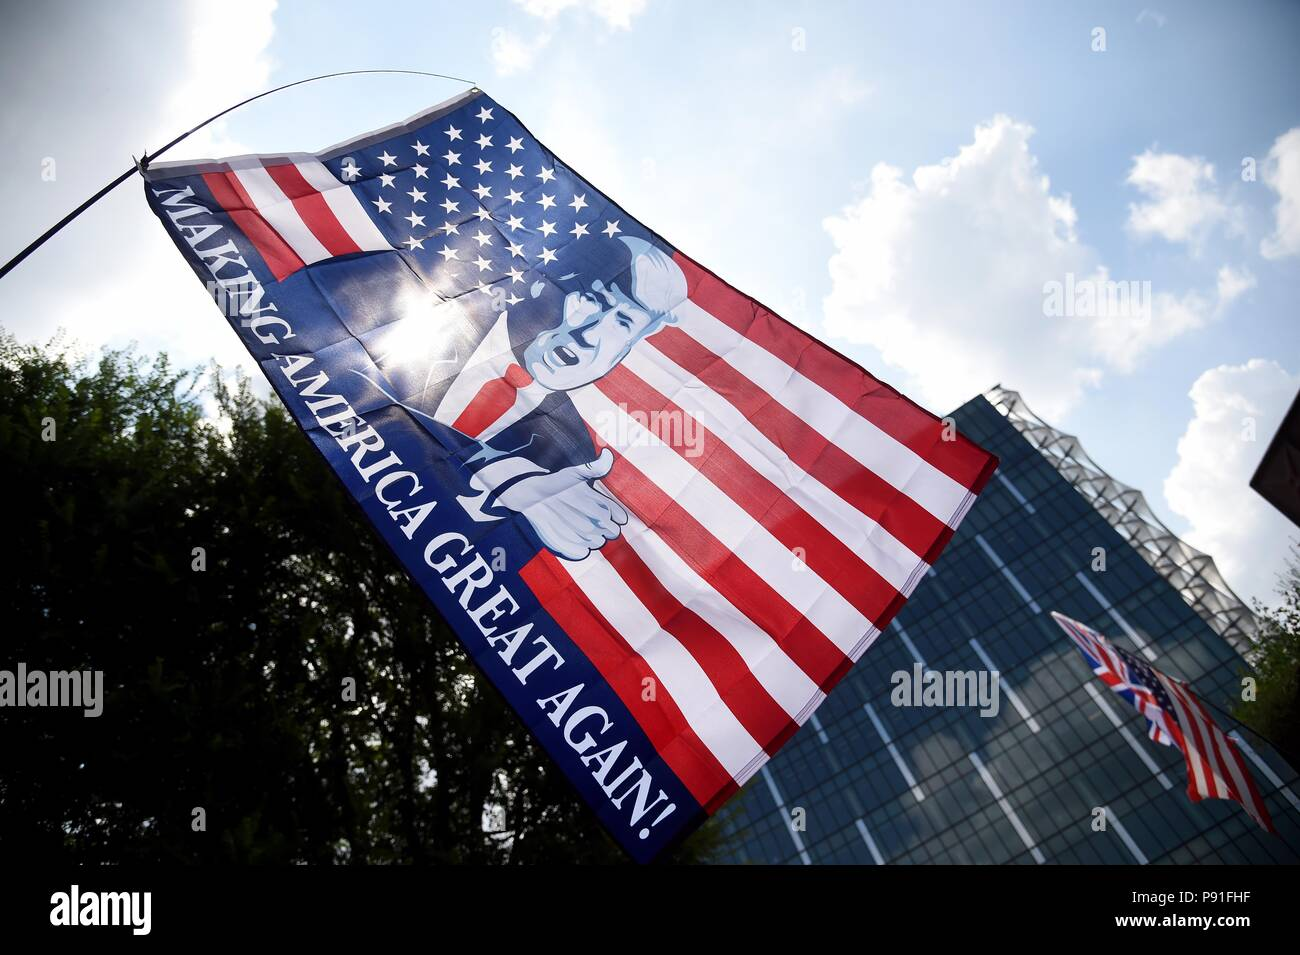 Pro-Donald Trump Rally, US Embassy, London, UK Credit: Finnbarr Webster/Alamy Live News - Stock Image